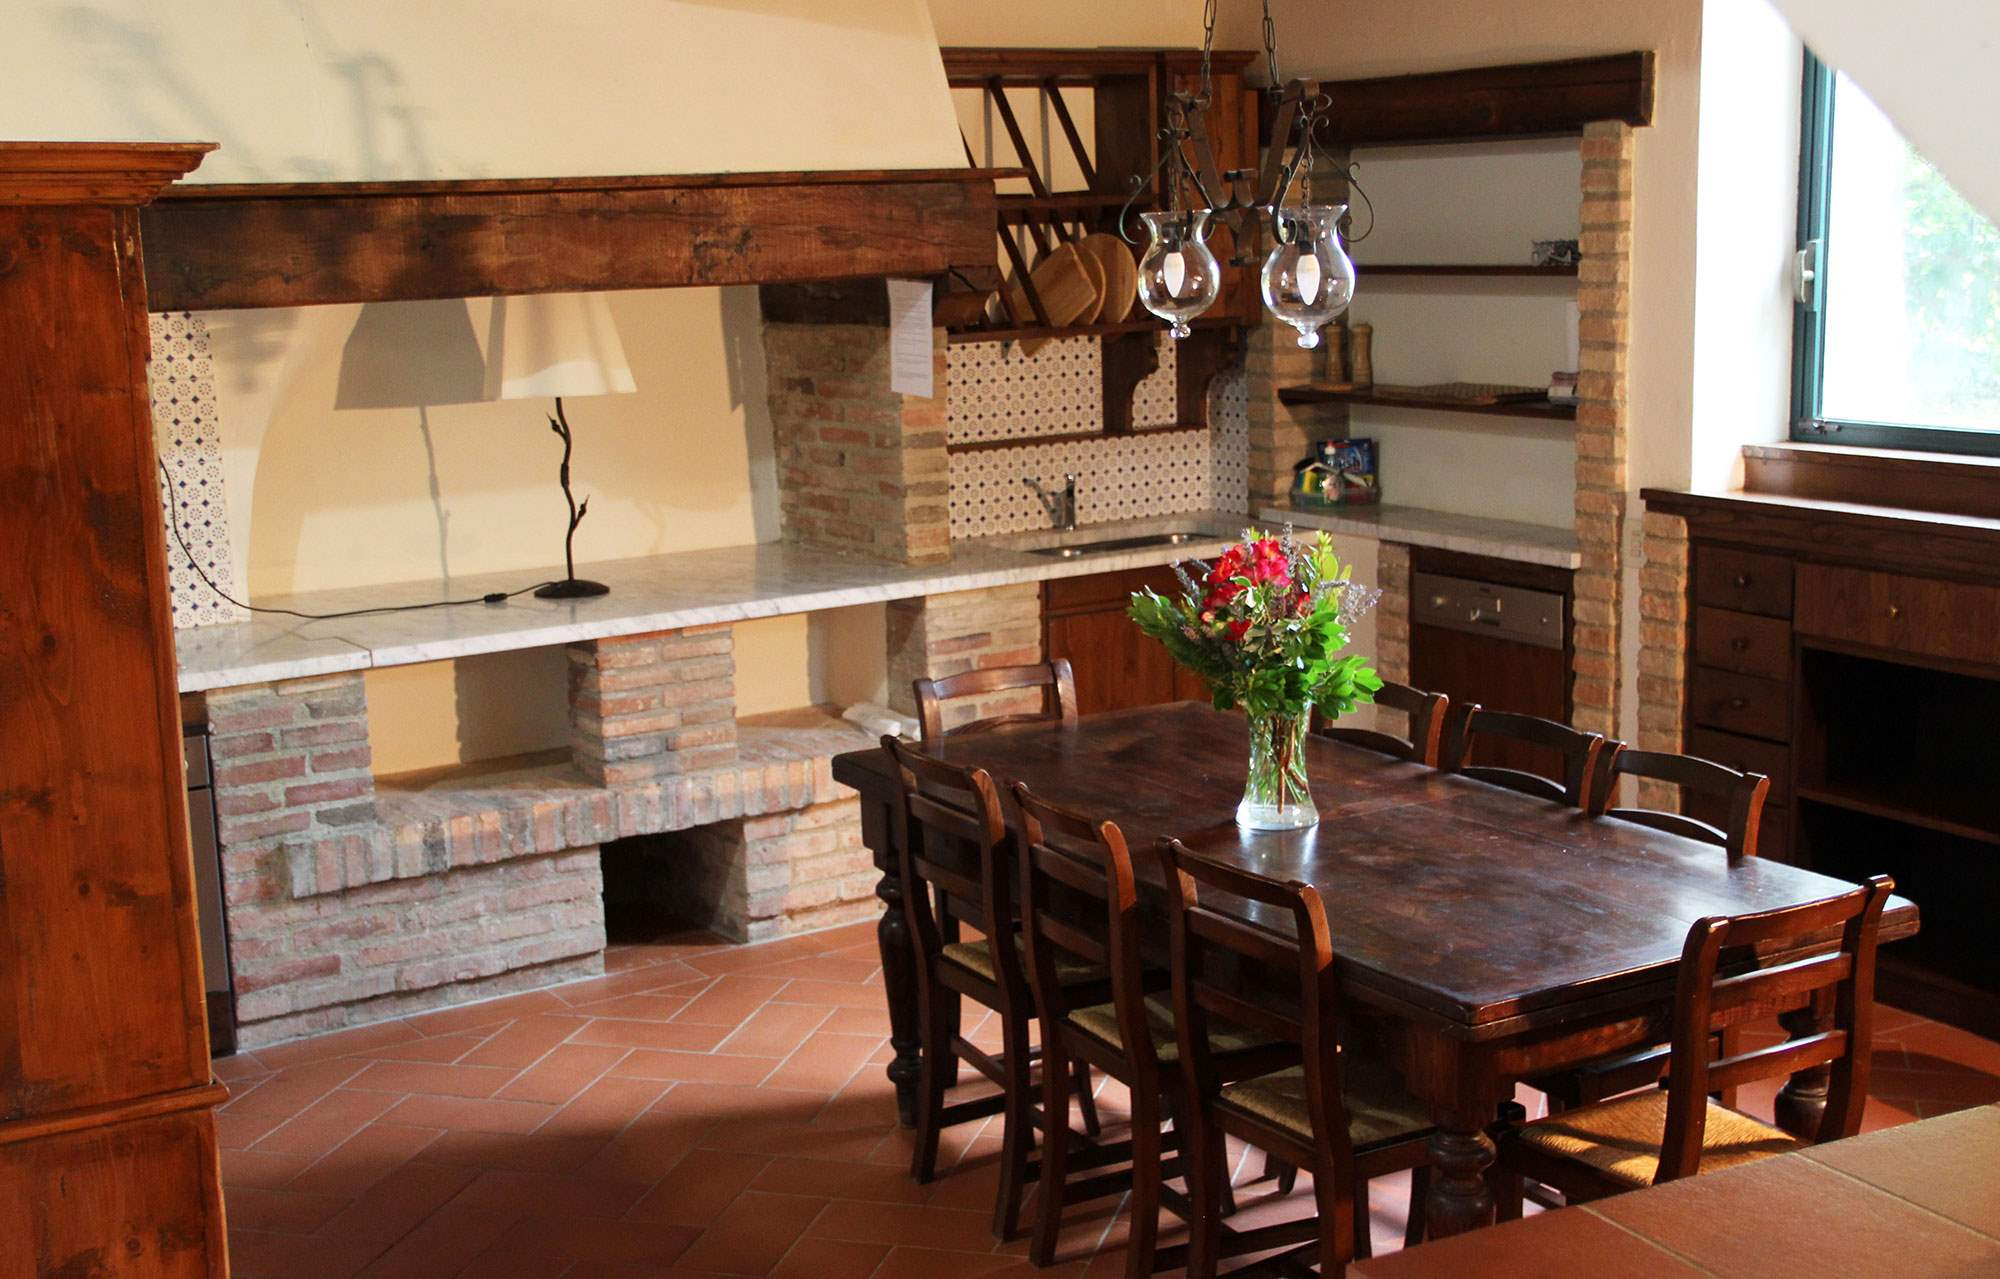 Casas Ferruzzi, 8 bedroom apartment in Chianti & Countryside, Tuscany Photo #8